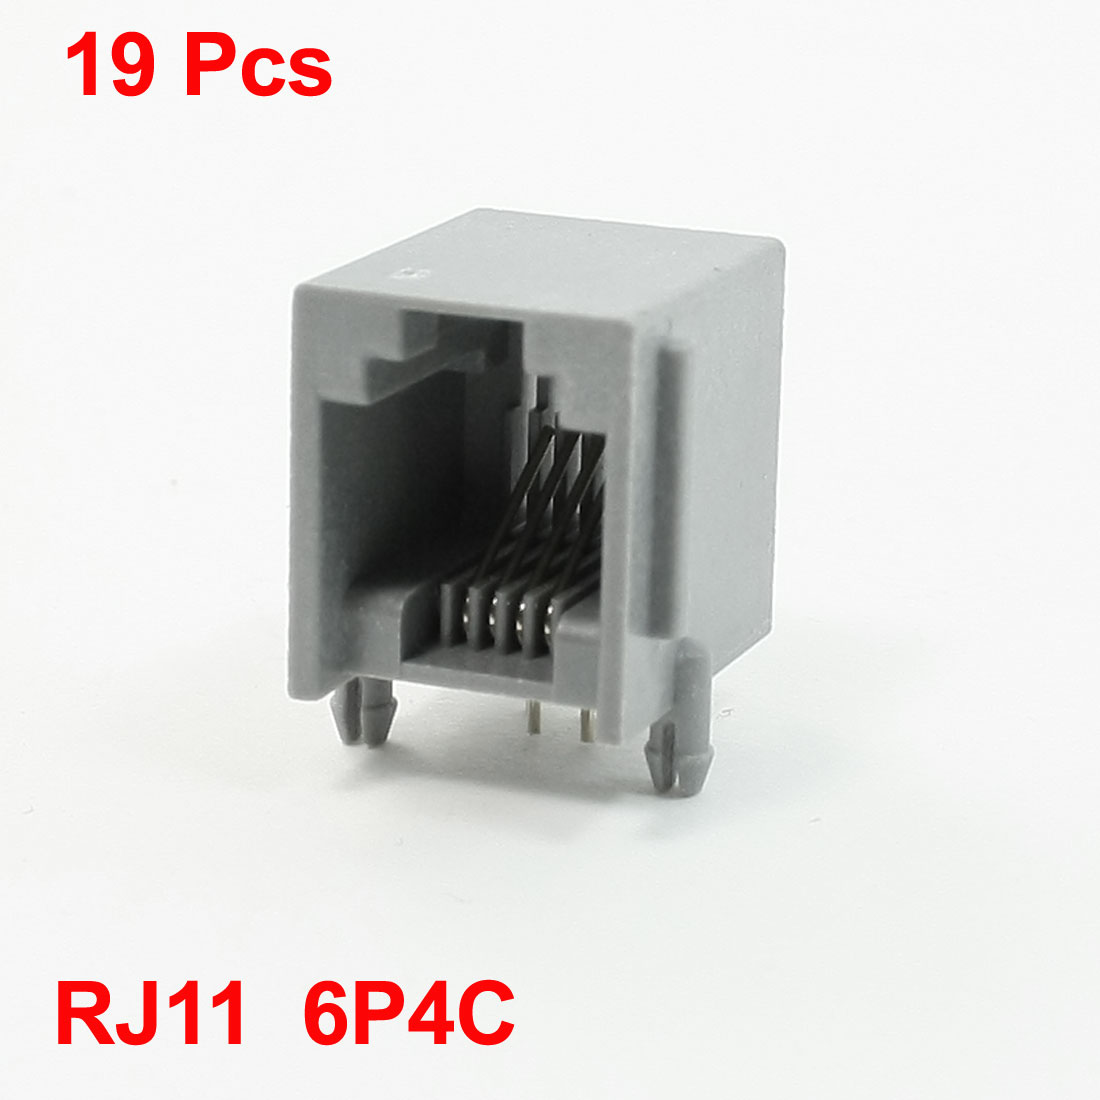 Right Angle Pins RJ11 6P4C Modular Network PCB Jack 15mm Length 19Pcs